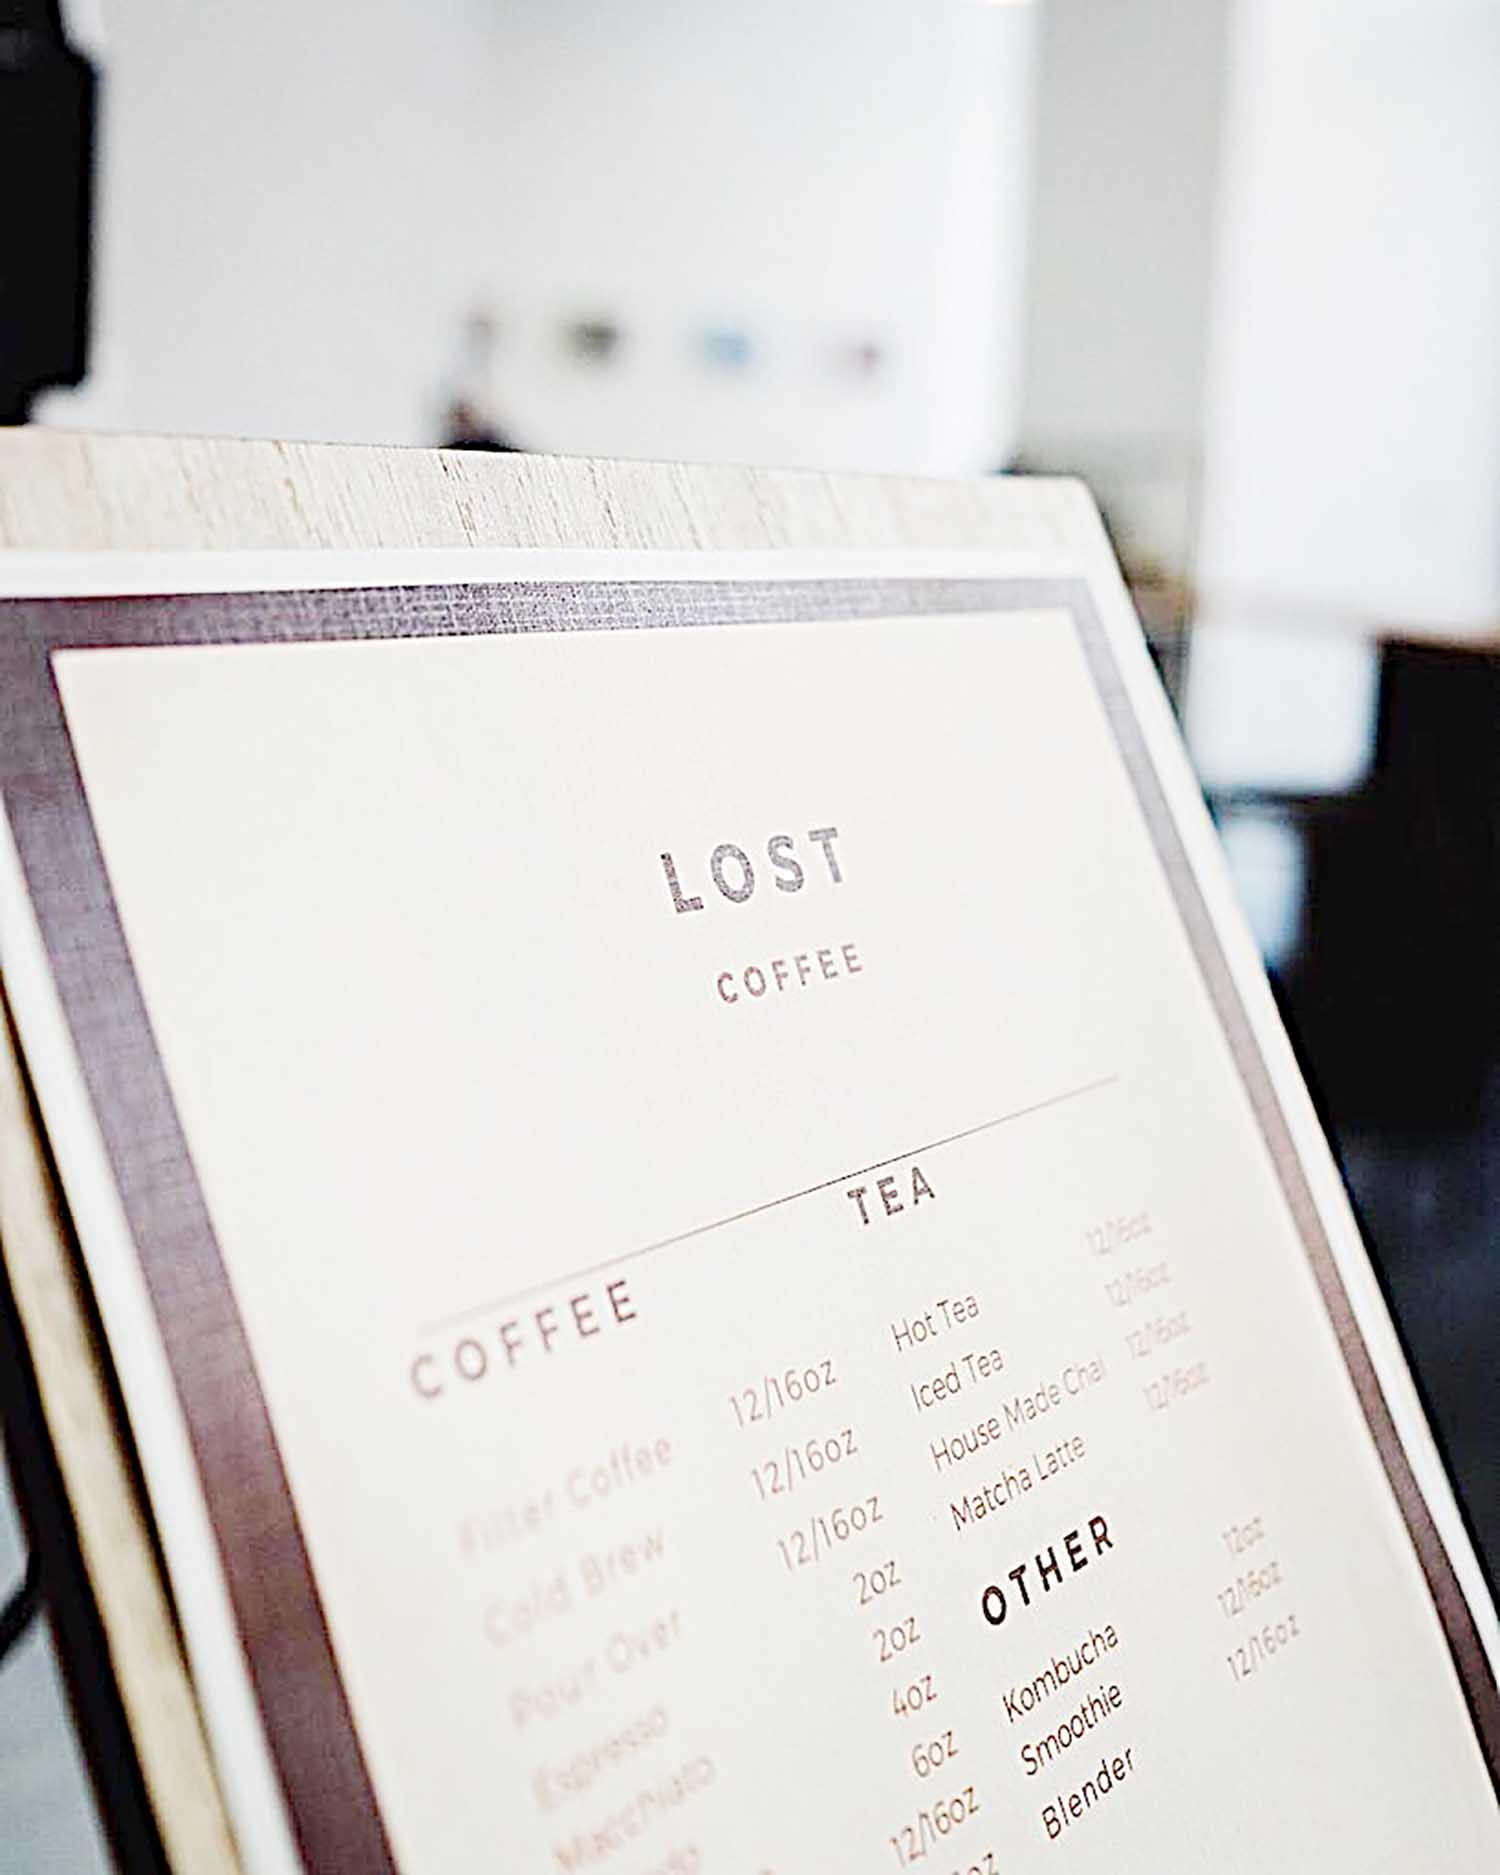 Lost Coffee Menu.jpg